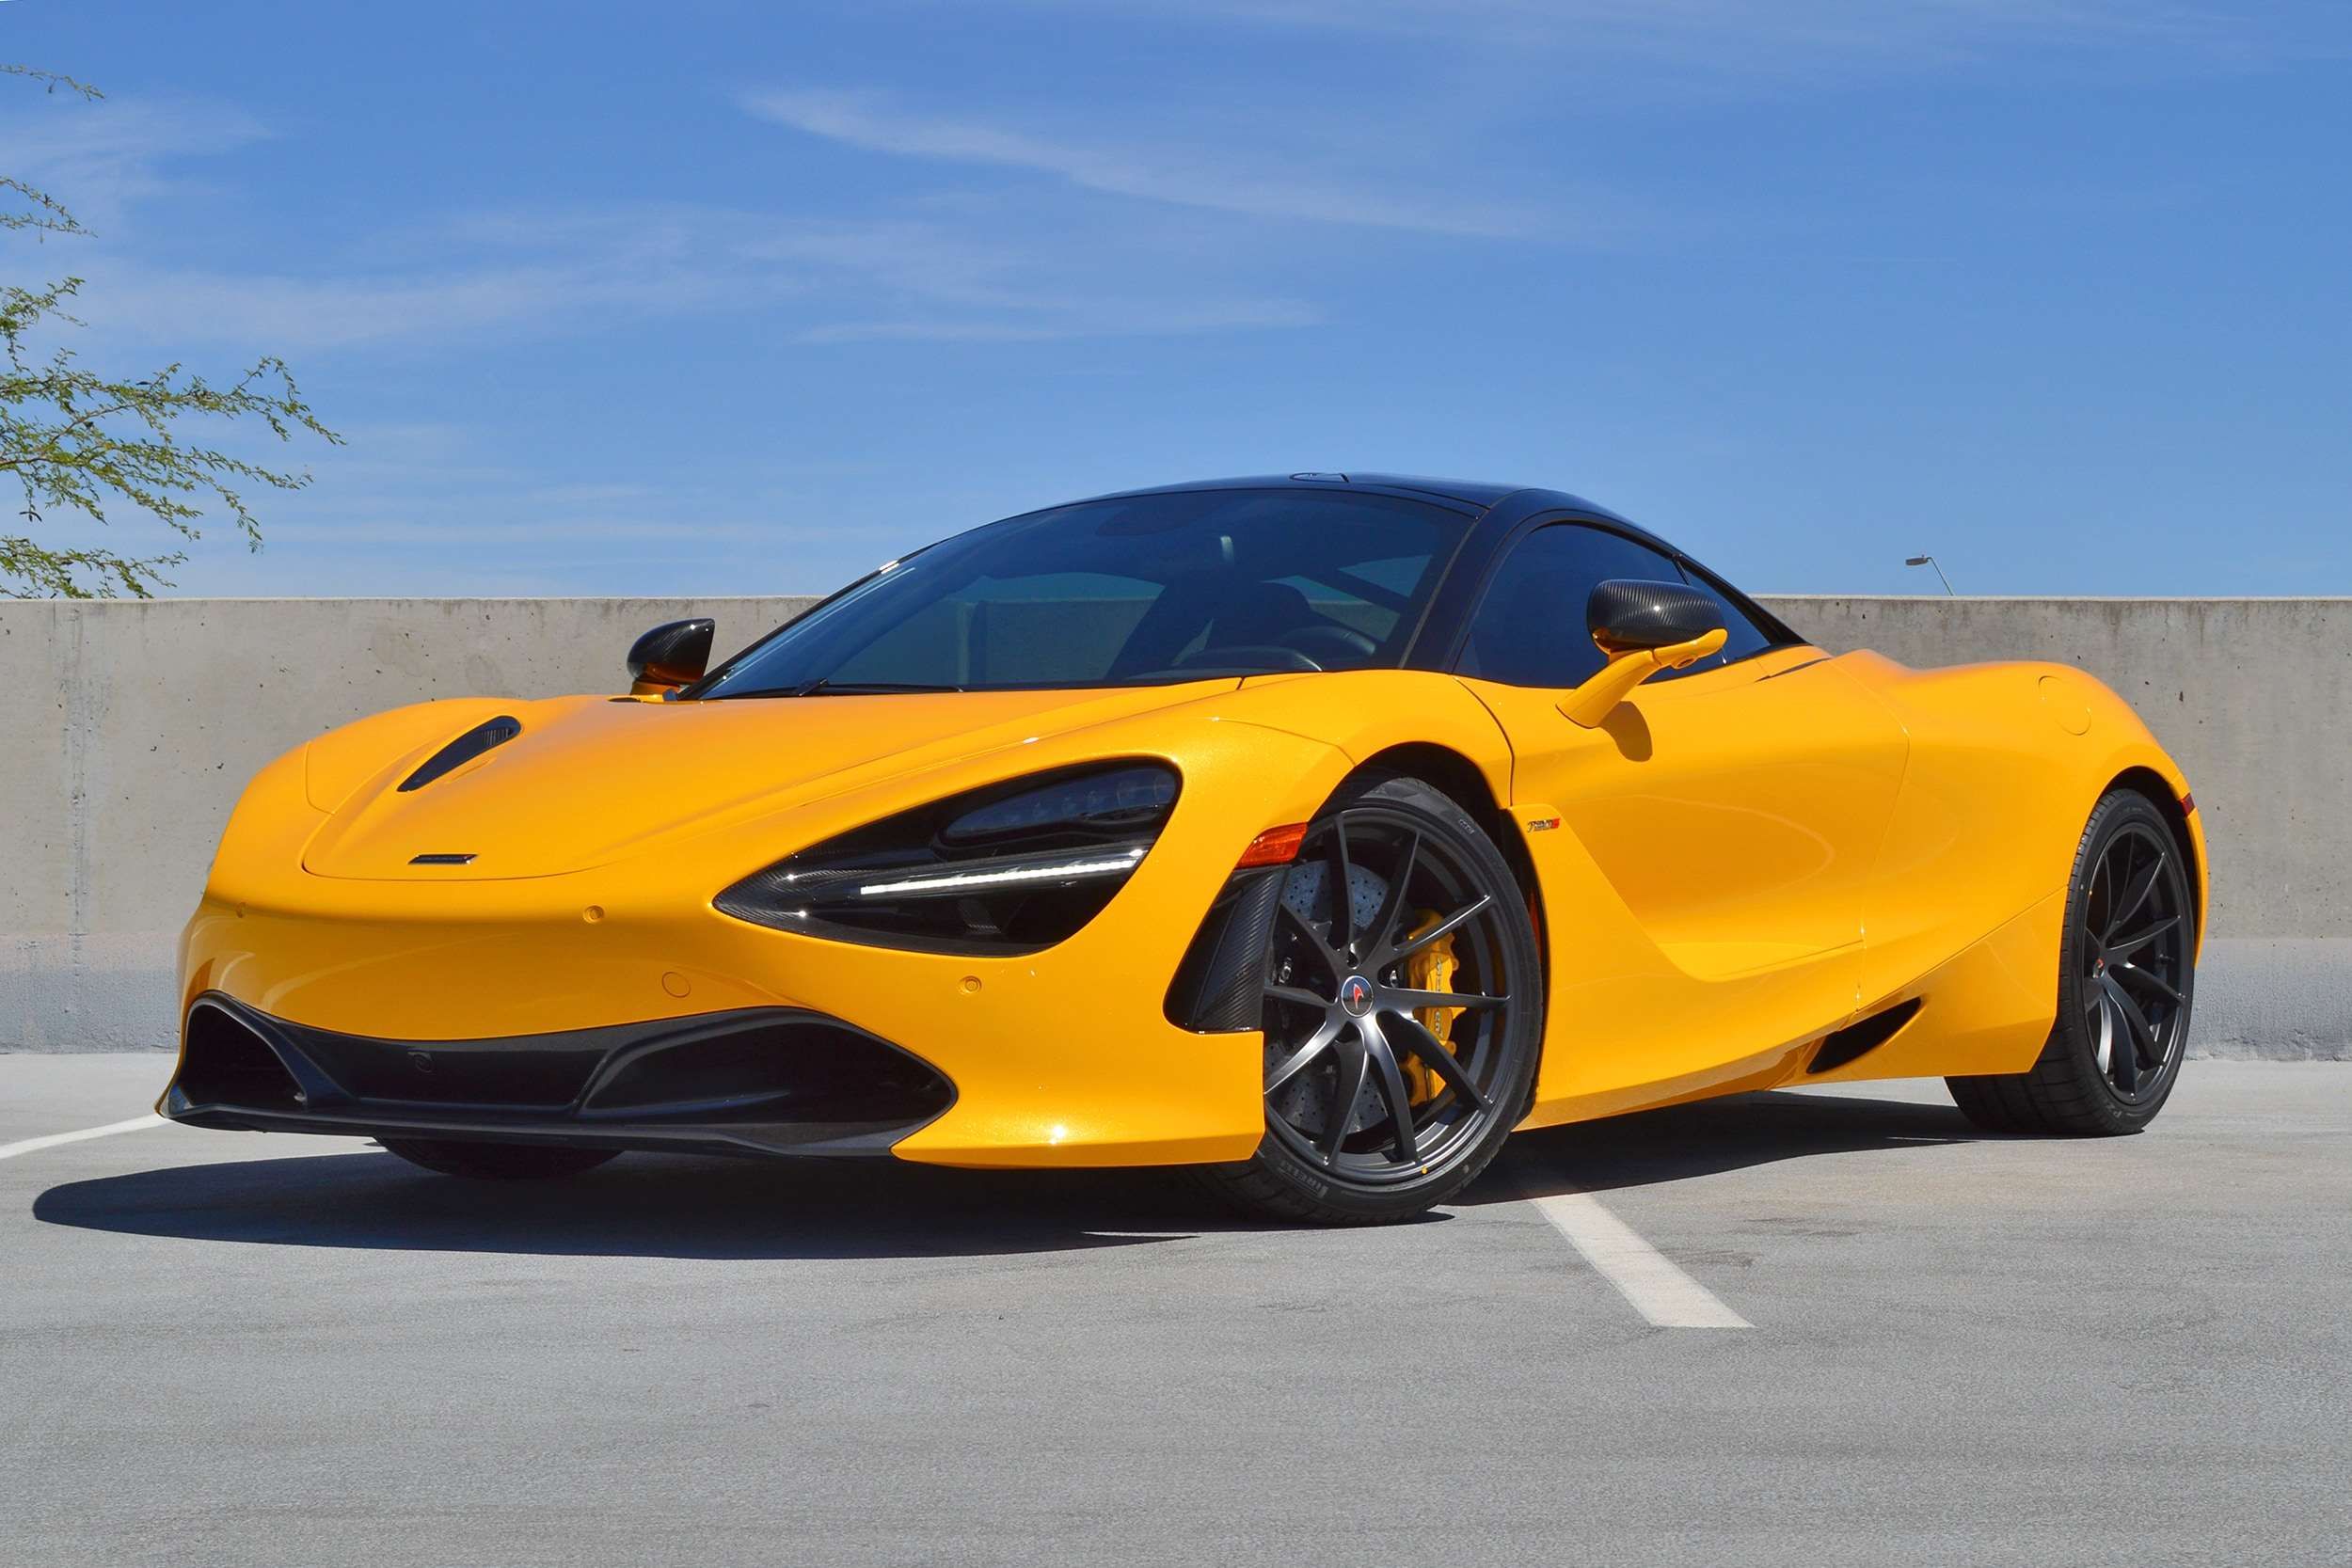 2018 McLaren 720S Performance Coupe